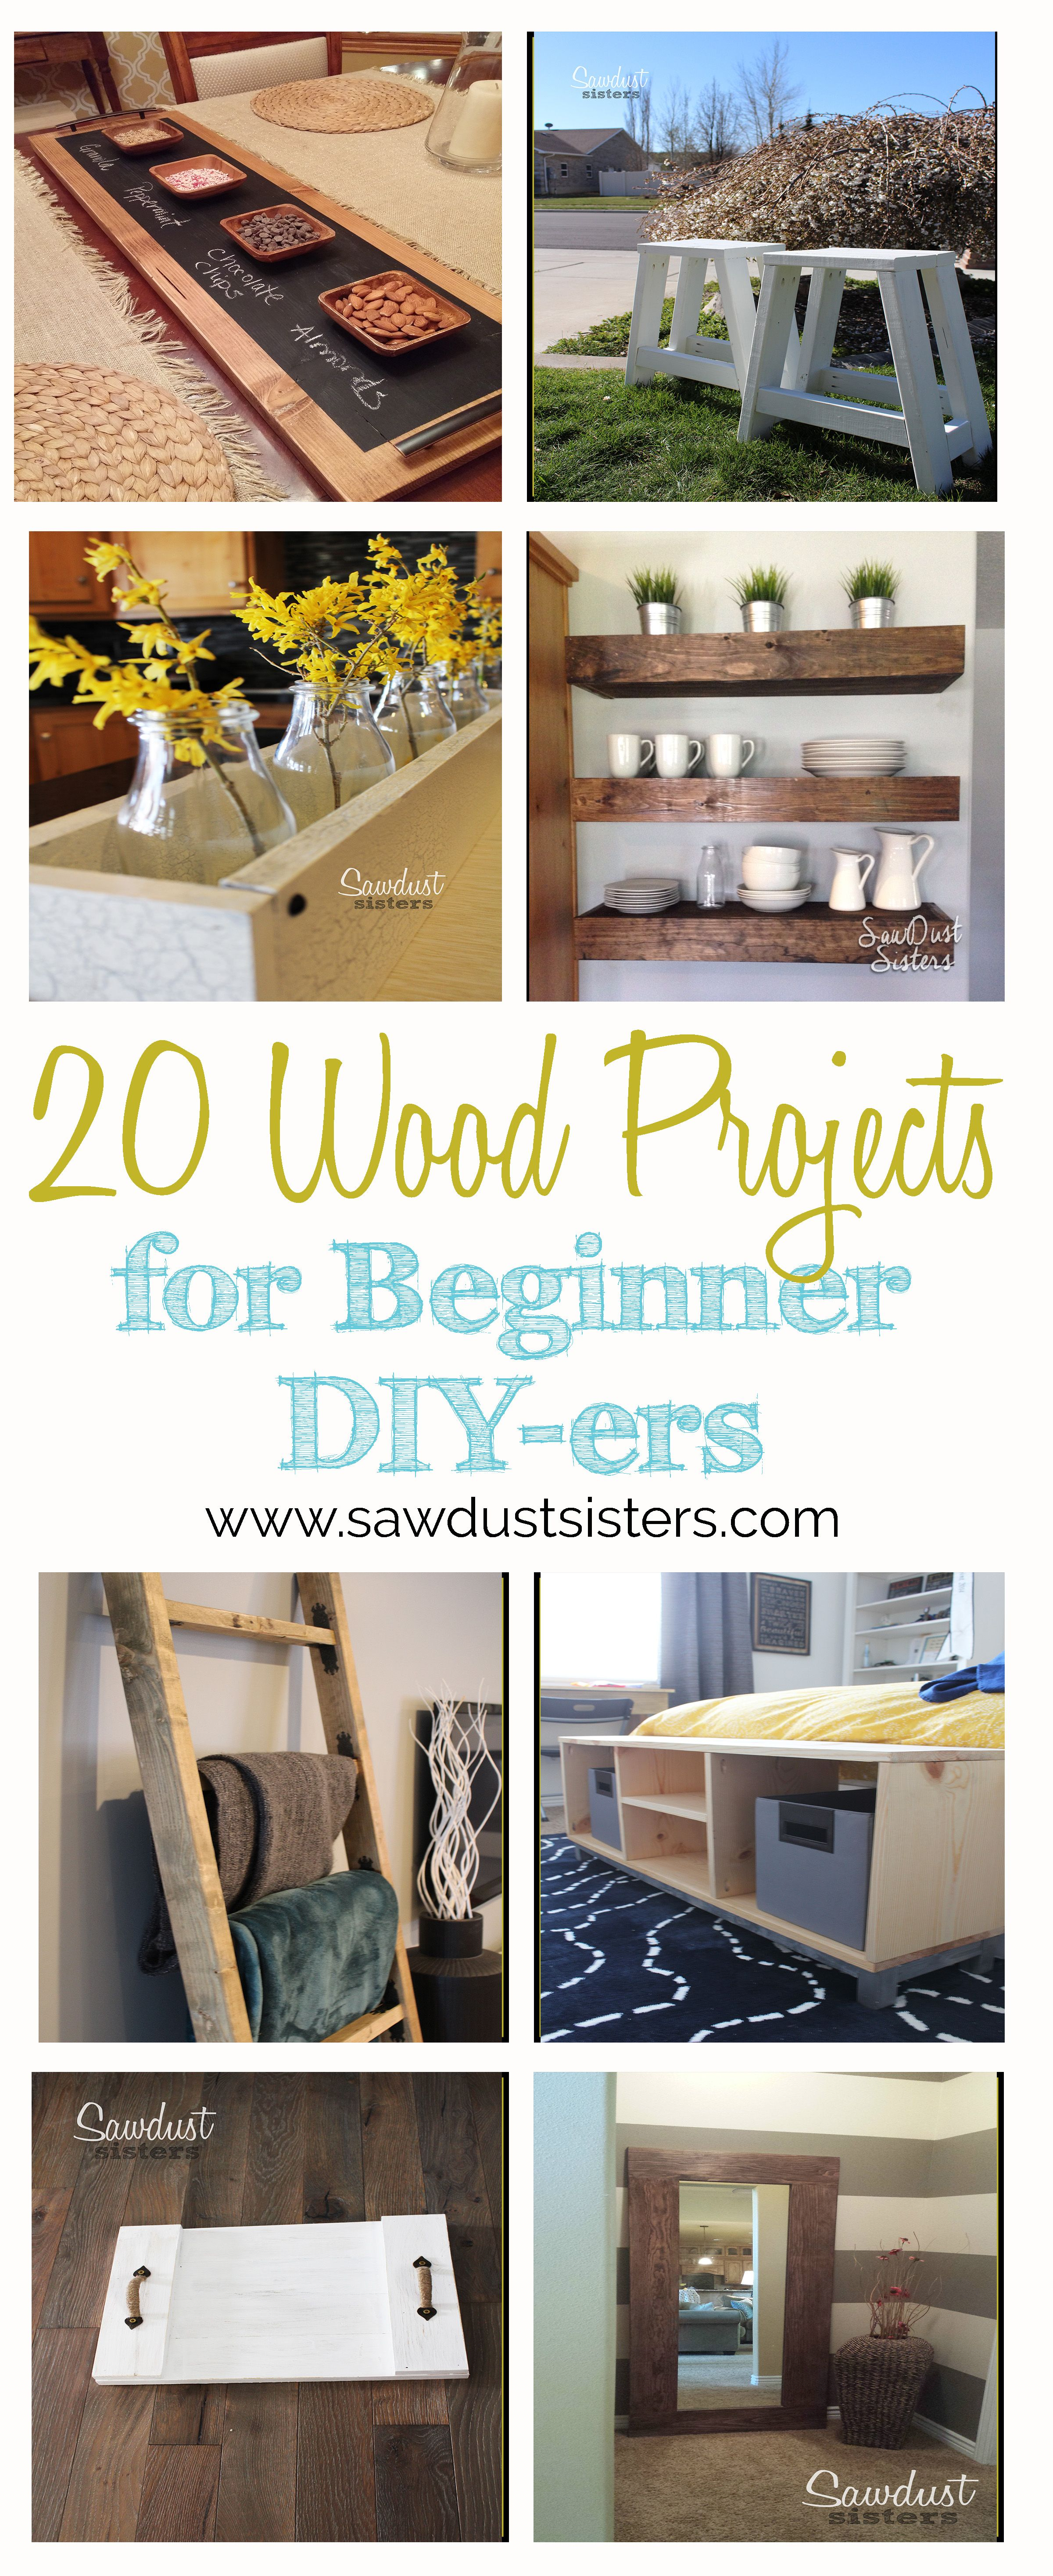 DIY Wood Projects Woodworking projects diy, Cool diy